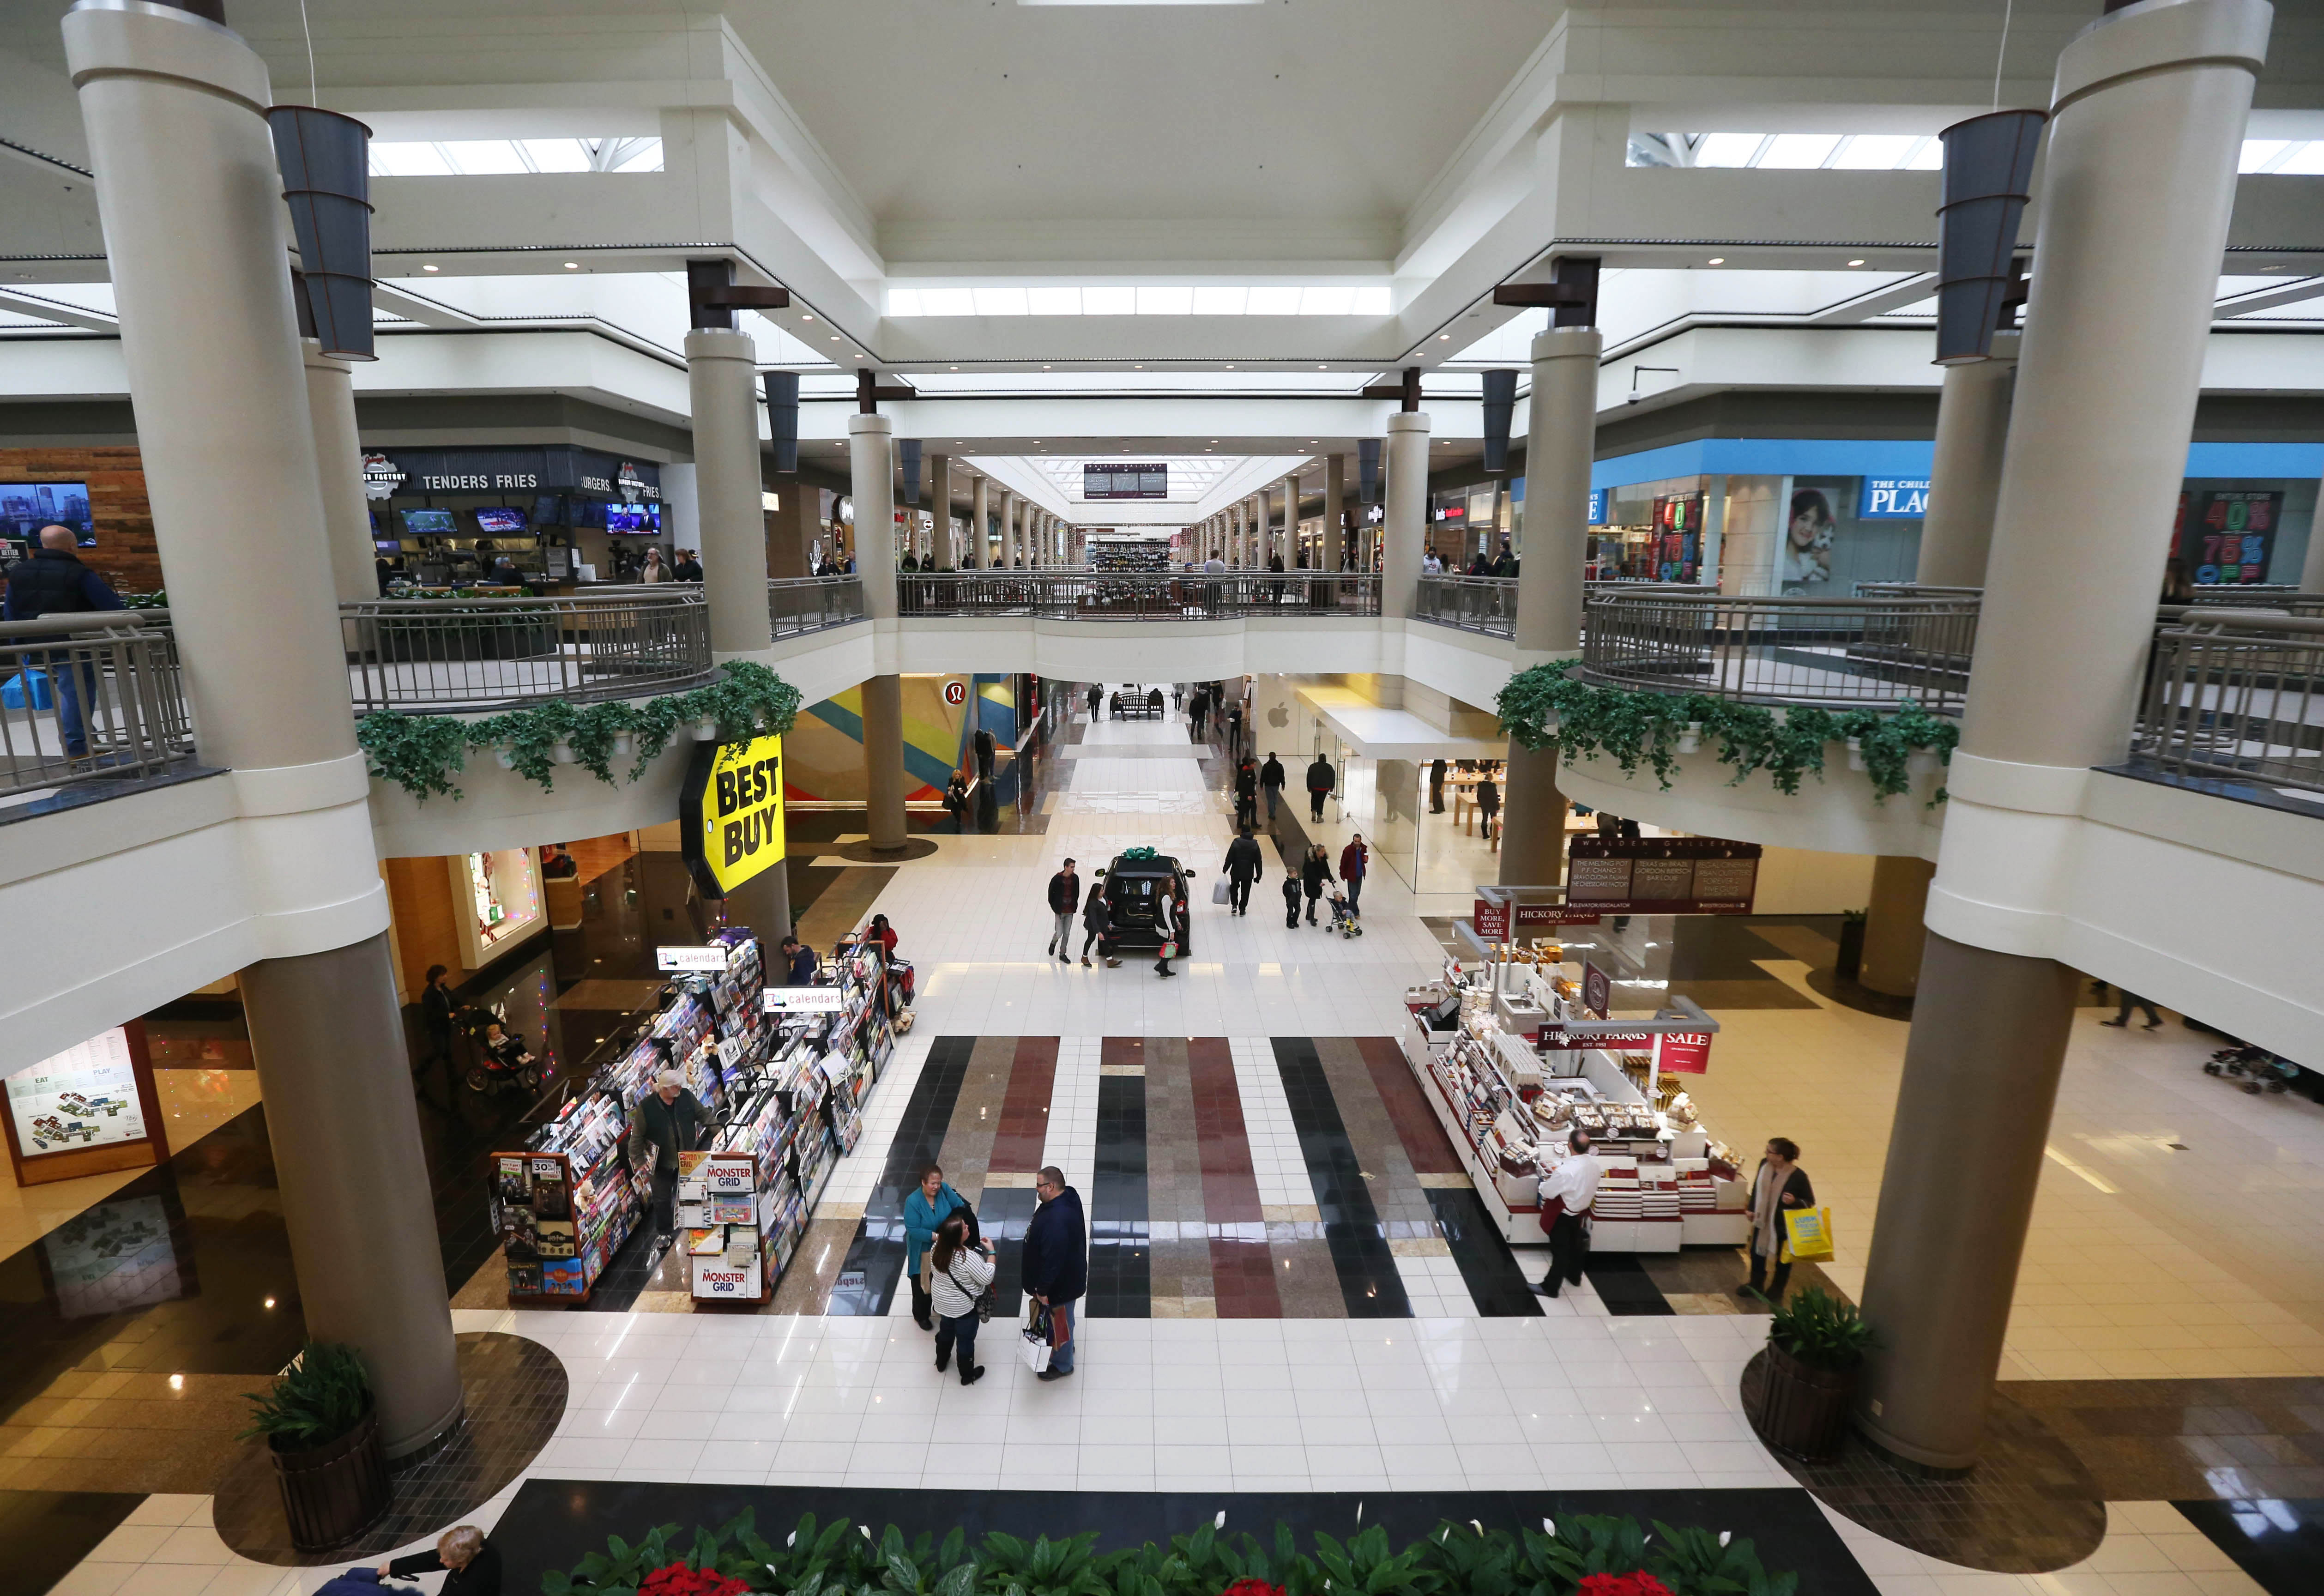 Expanded curfew may follow walden galleria 39 mall brawl for Jared the galleria of jewelry amherst ny